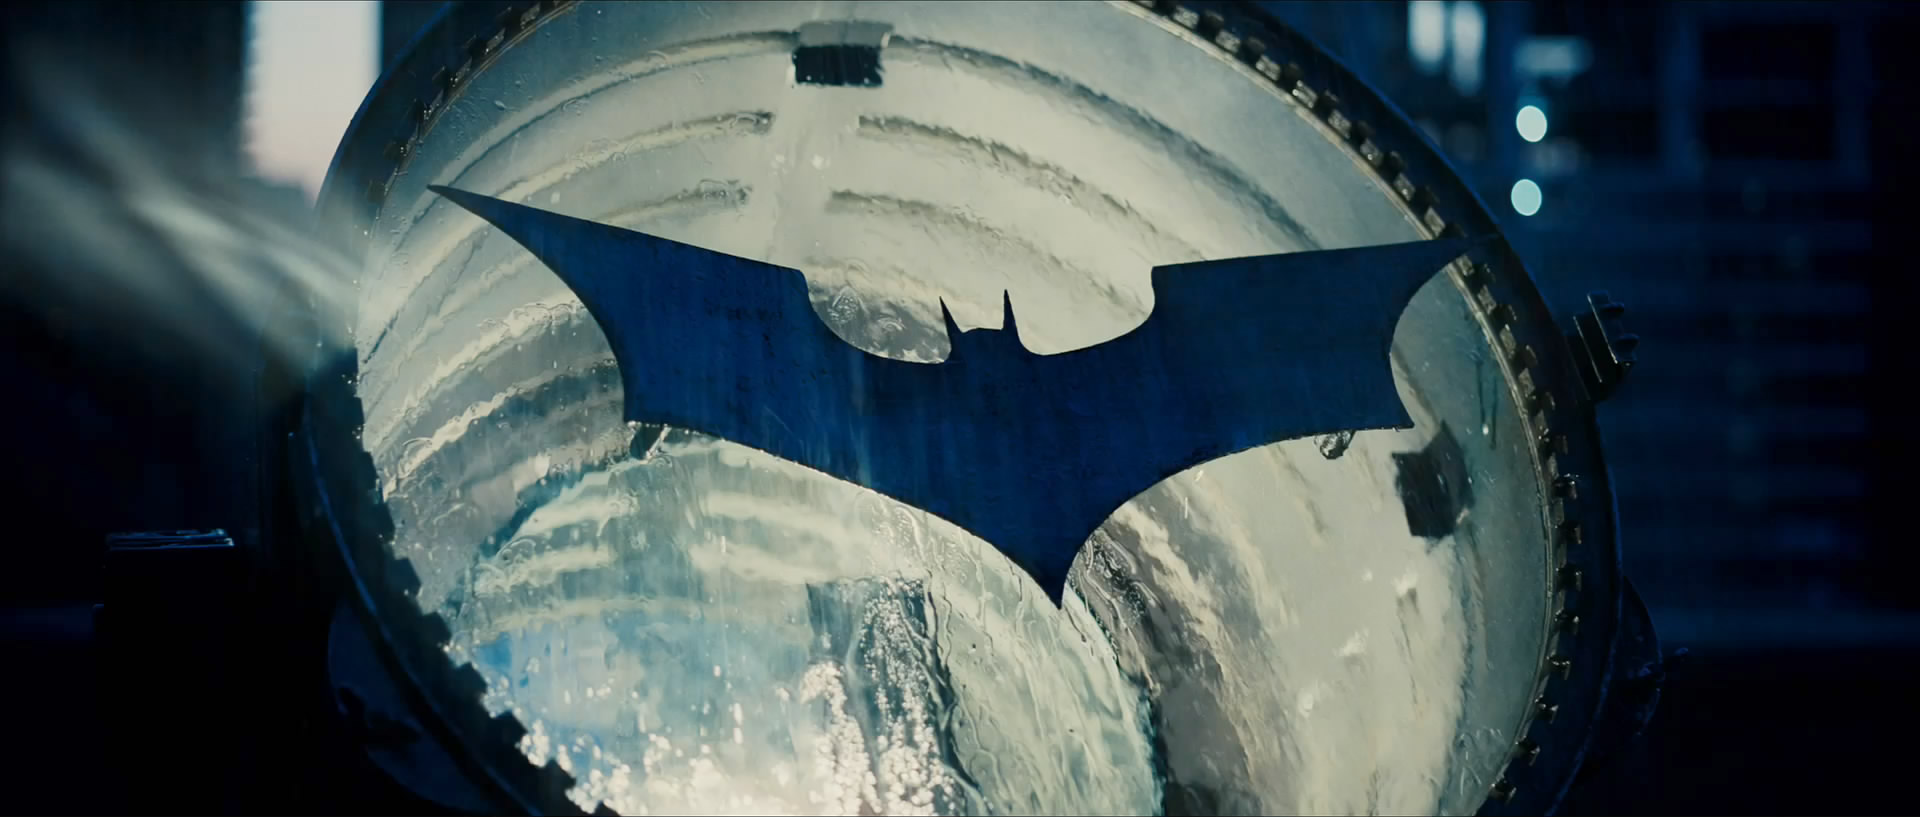 8 Important Life Lessons To Learn From The Dark Knight Trilogy